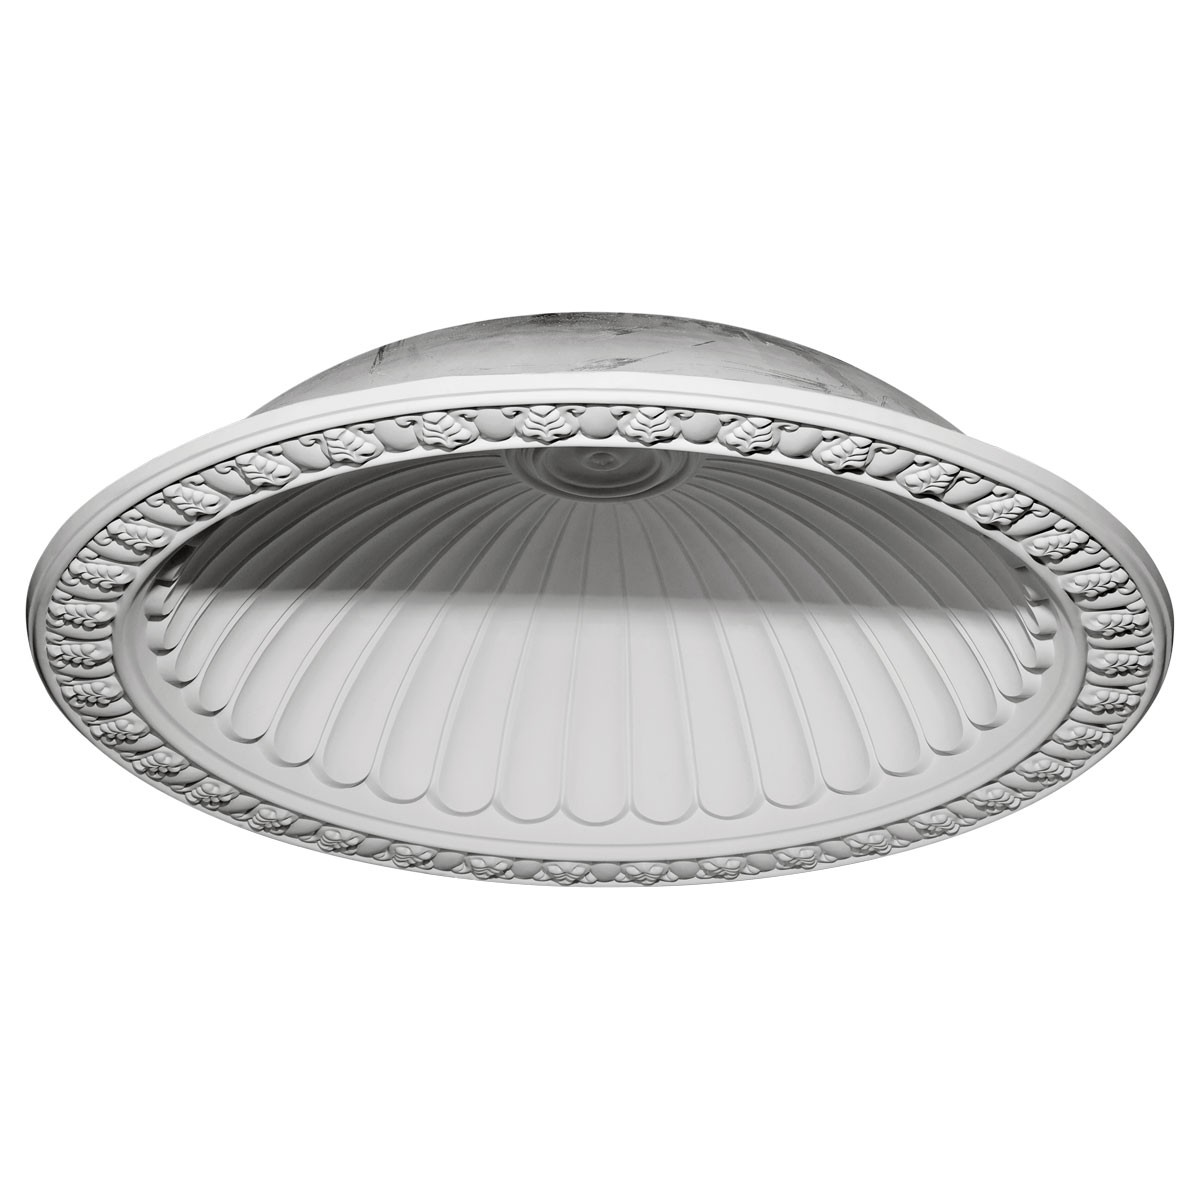 """EM-DOME60CL - 60 3/4""""OD x 50 1/8""""ID x 12 5/8""""D Claremont Recessed Mount Ceiling Dome (53""""Diameter x 14""""D Rough Opening)"""